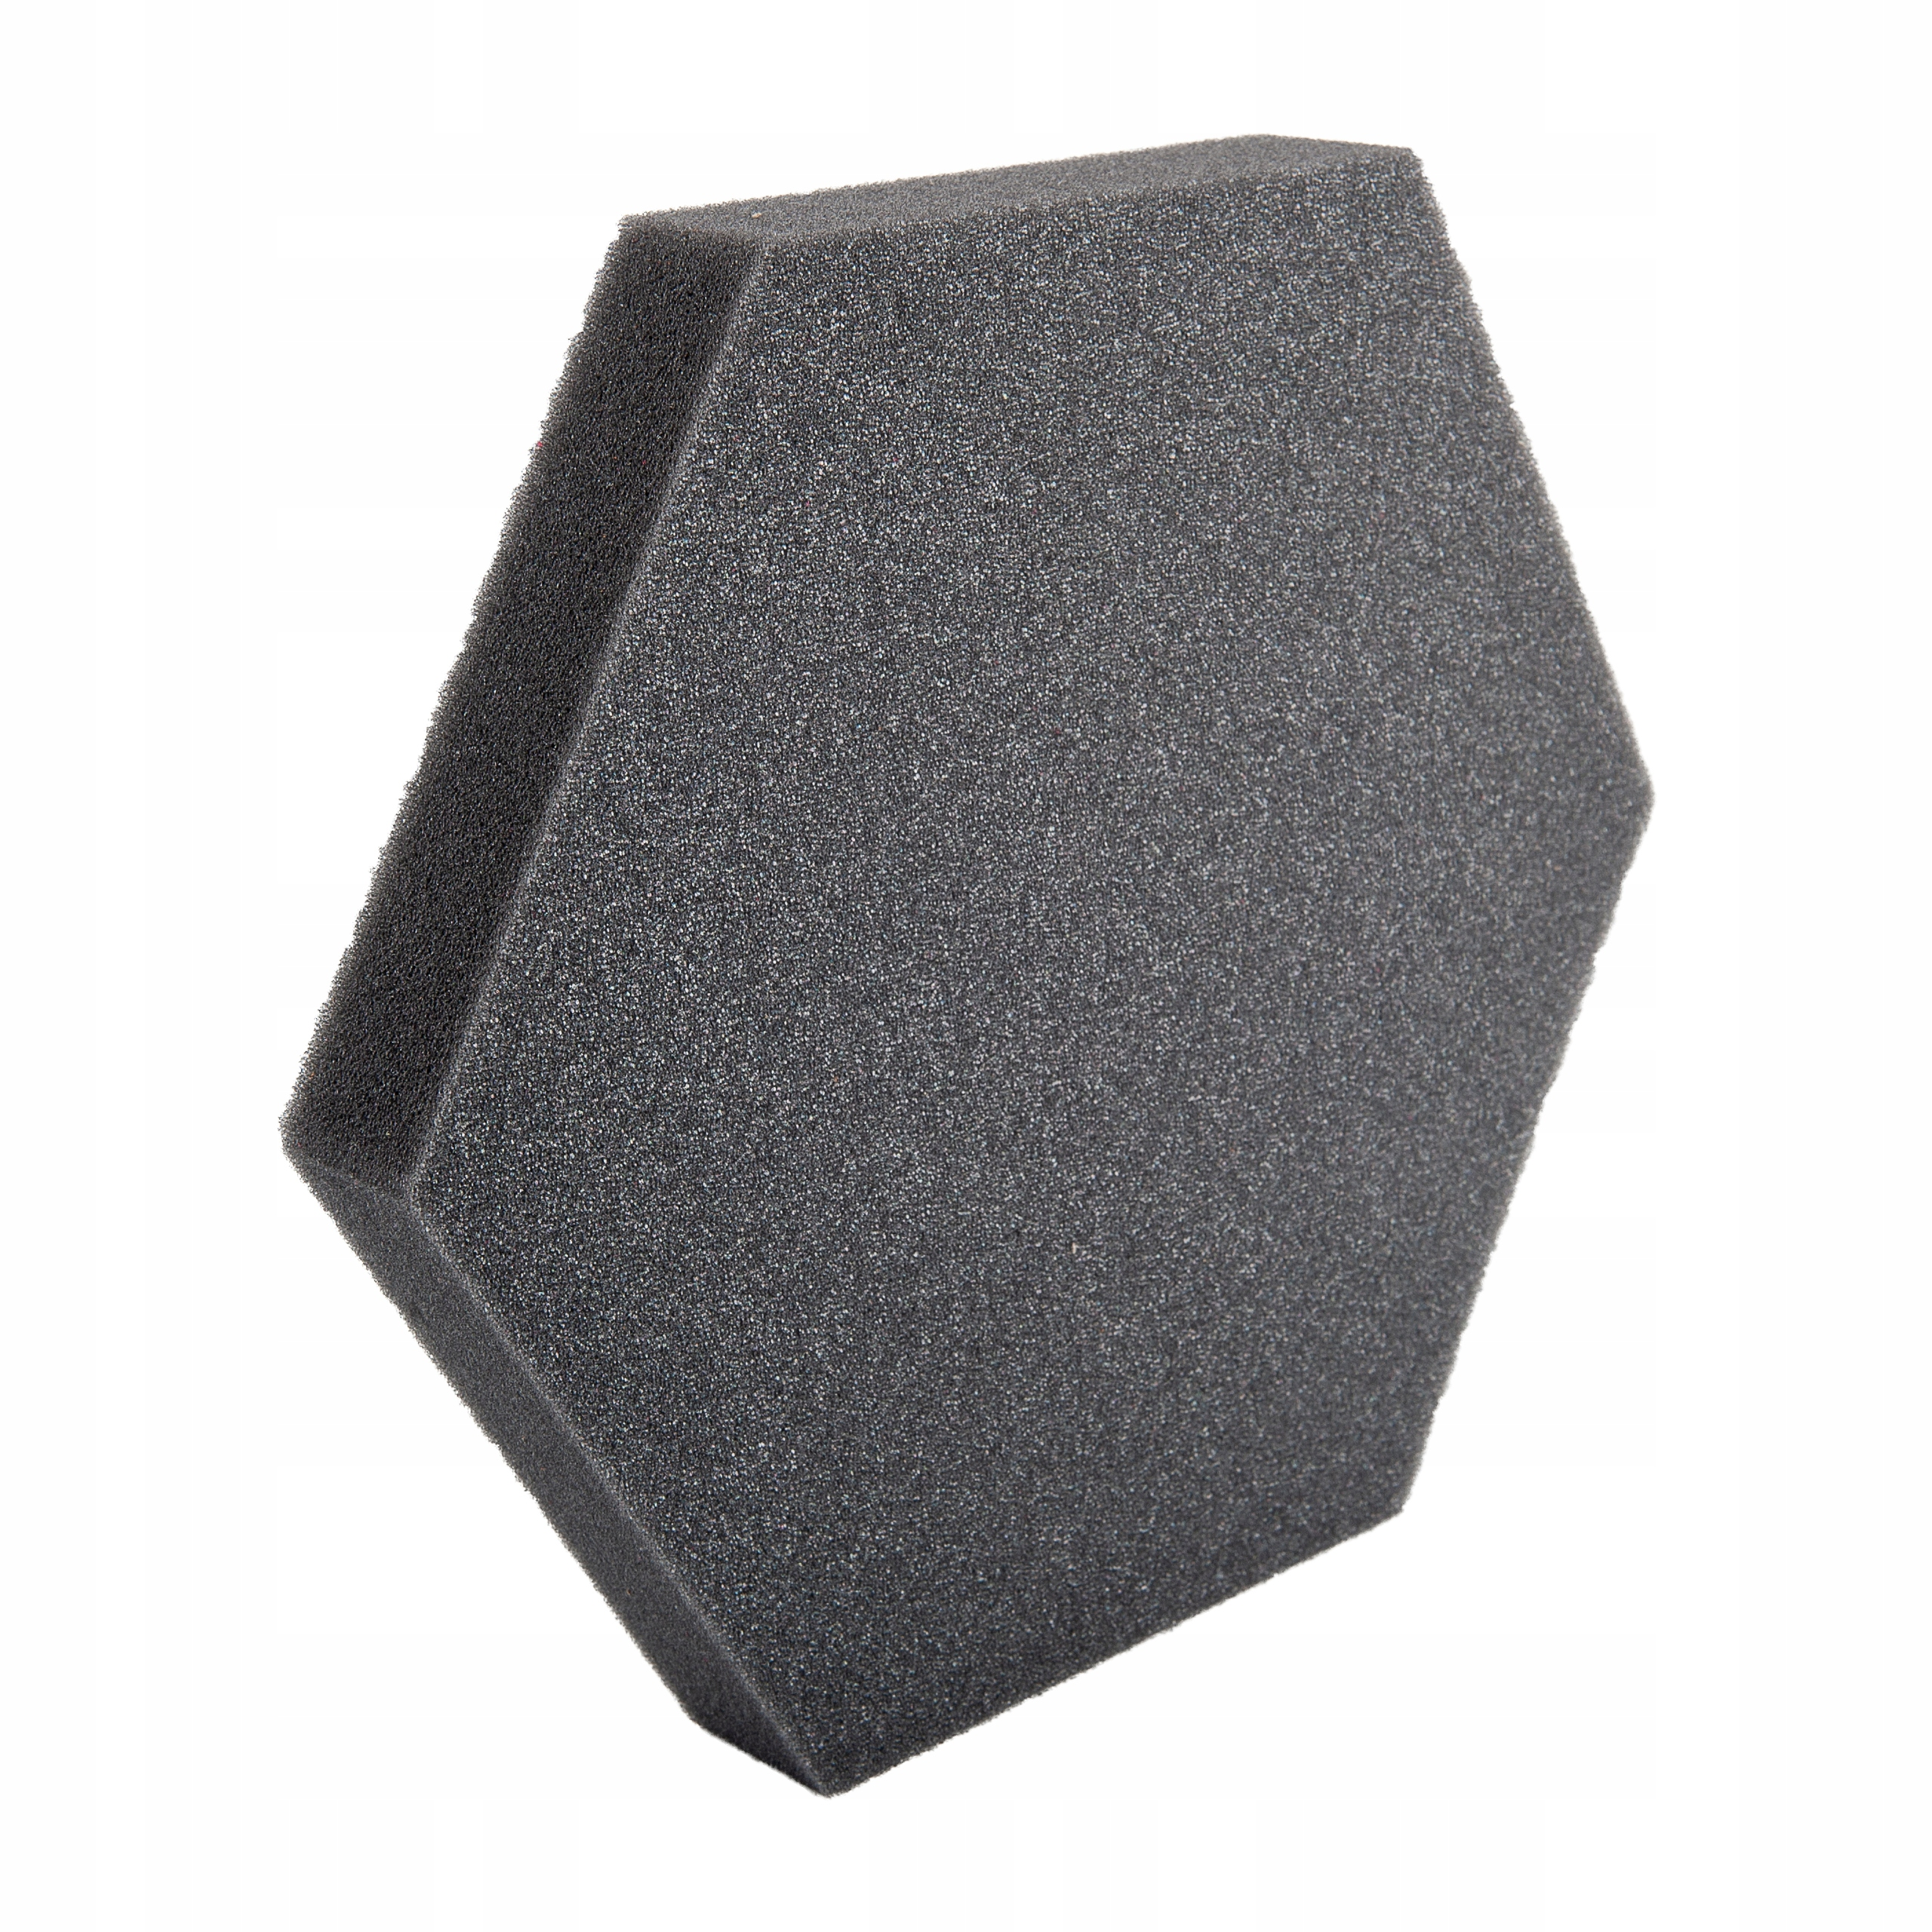 Item FOAM ACOUSTIC PANEL ACOUSTIC HEXAGON 4cm